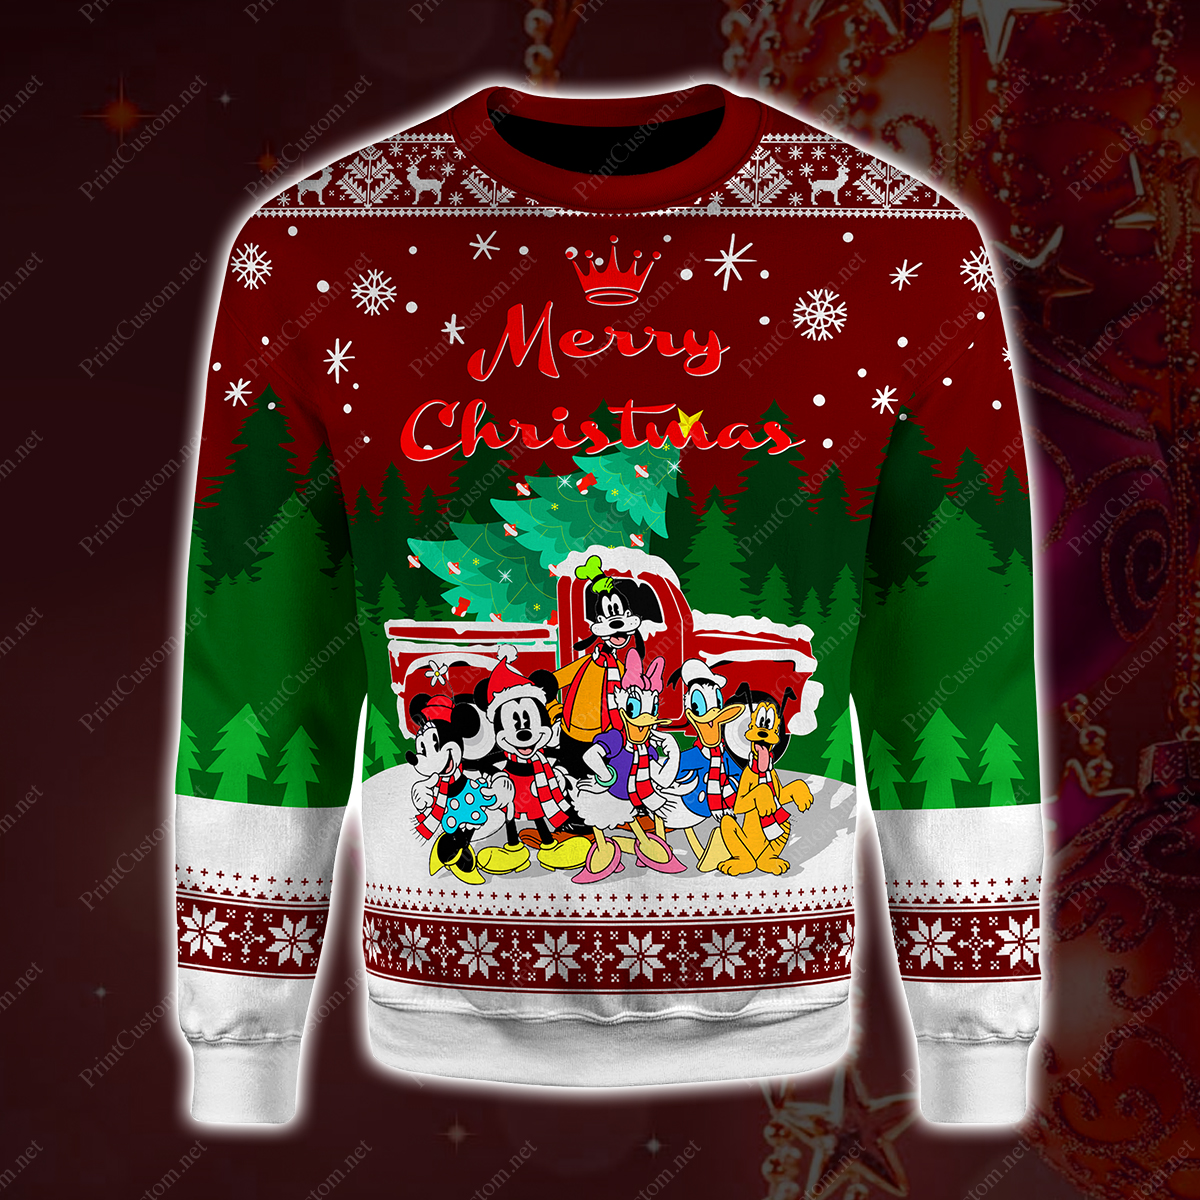 Disney characters merry christmas full printing sweater 1